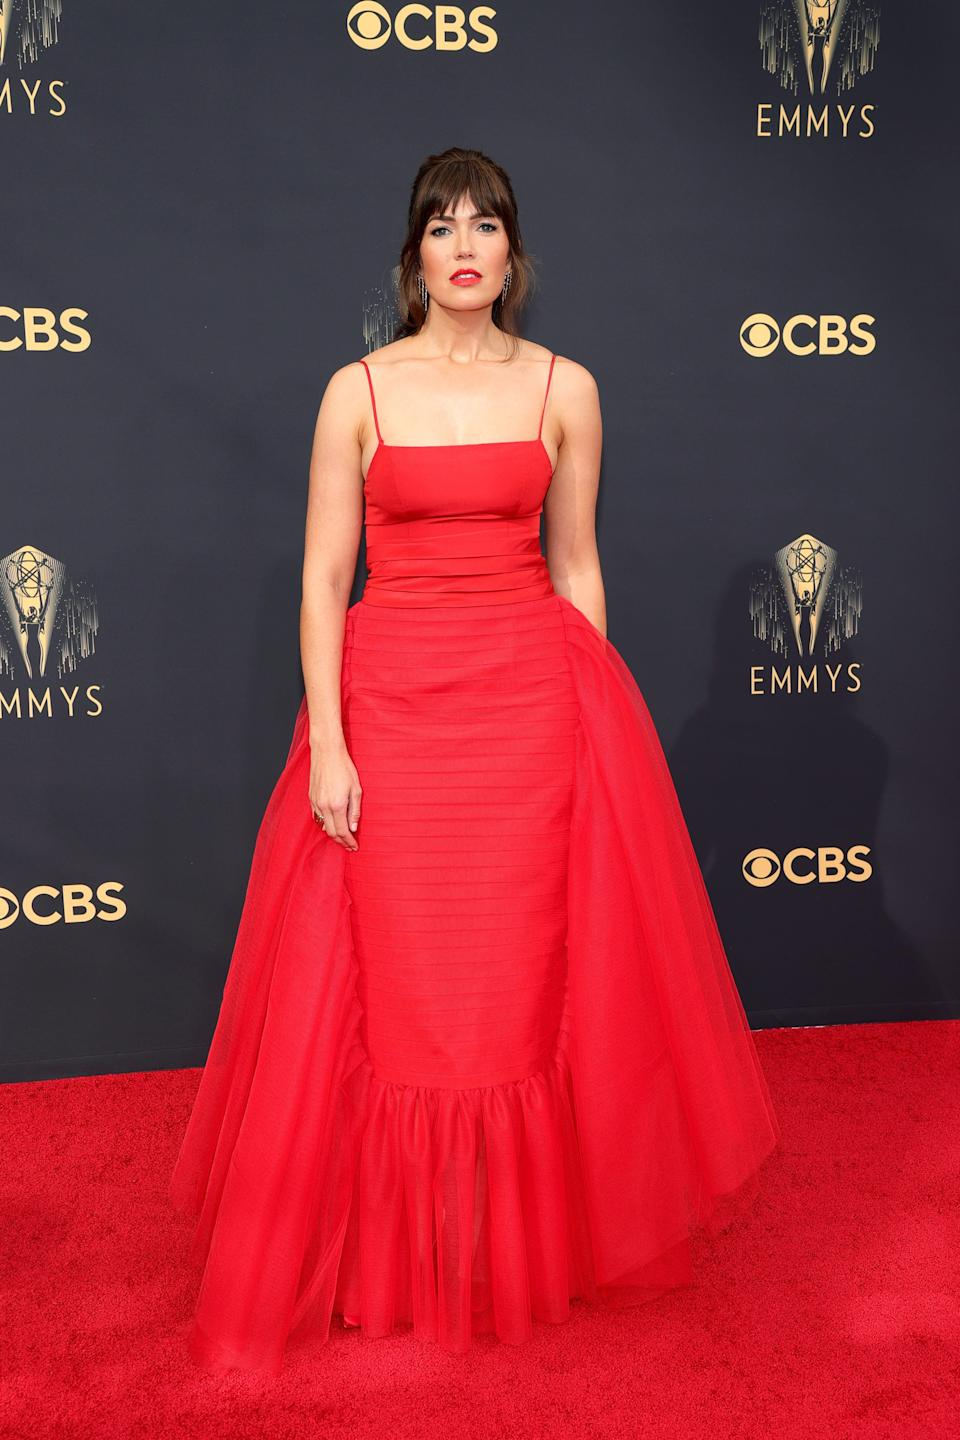 Mandy Moore attends the 2021 Emmys.